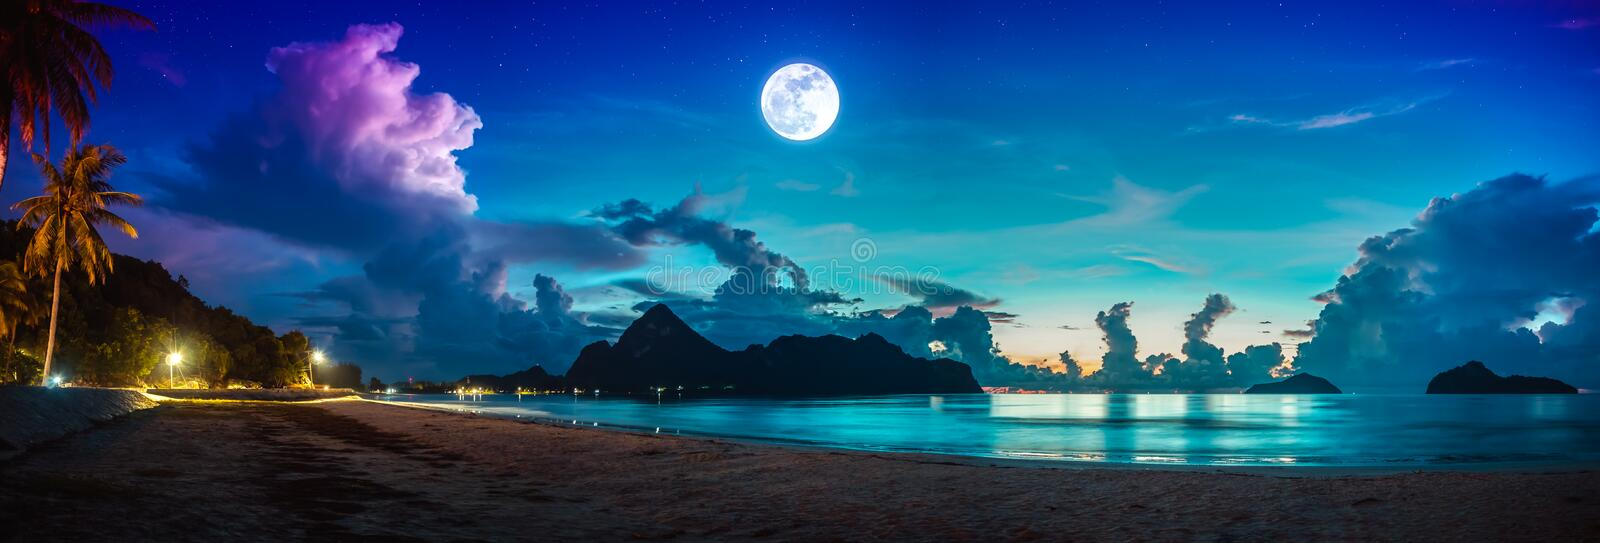 Colorful blue sky with cloud and bright full moon on seascape to night royalty free stock photos